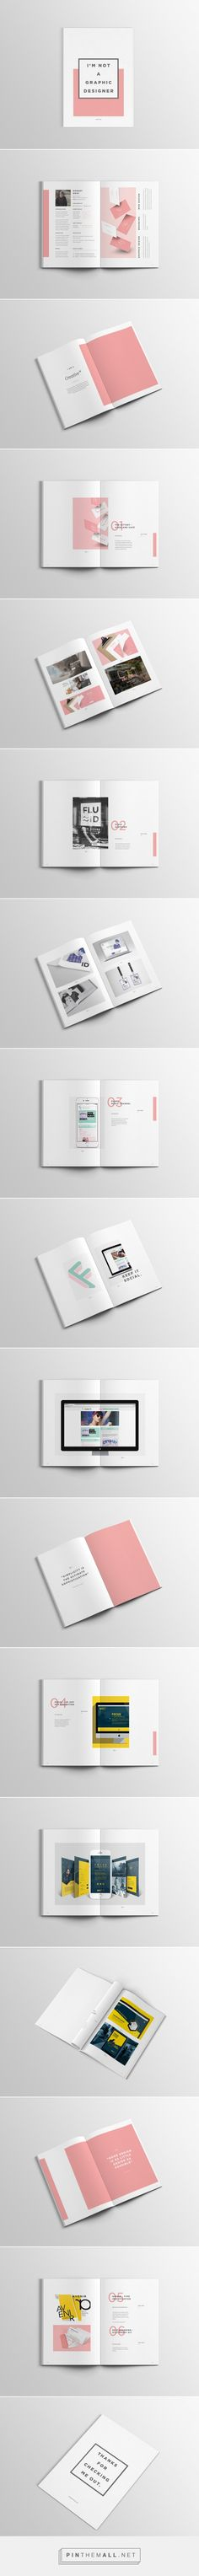 Graphic Design Portfolio Minimal/Simple on Behance a grouped images pic - Fiverr Outsource - Outsource your work on Fiverr and save your time. - Graphic Design Portfolio Minimal/Simple on Behance a grouped images picture Pin Them All Layout Design, Graphisches Design, Buch Design, Print Layout, Print Design, Cover Design, Interior Design, Book Portfolio, Mise En Page Portfolio